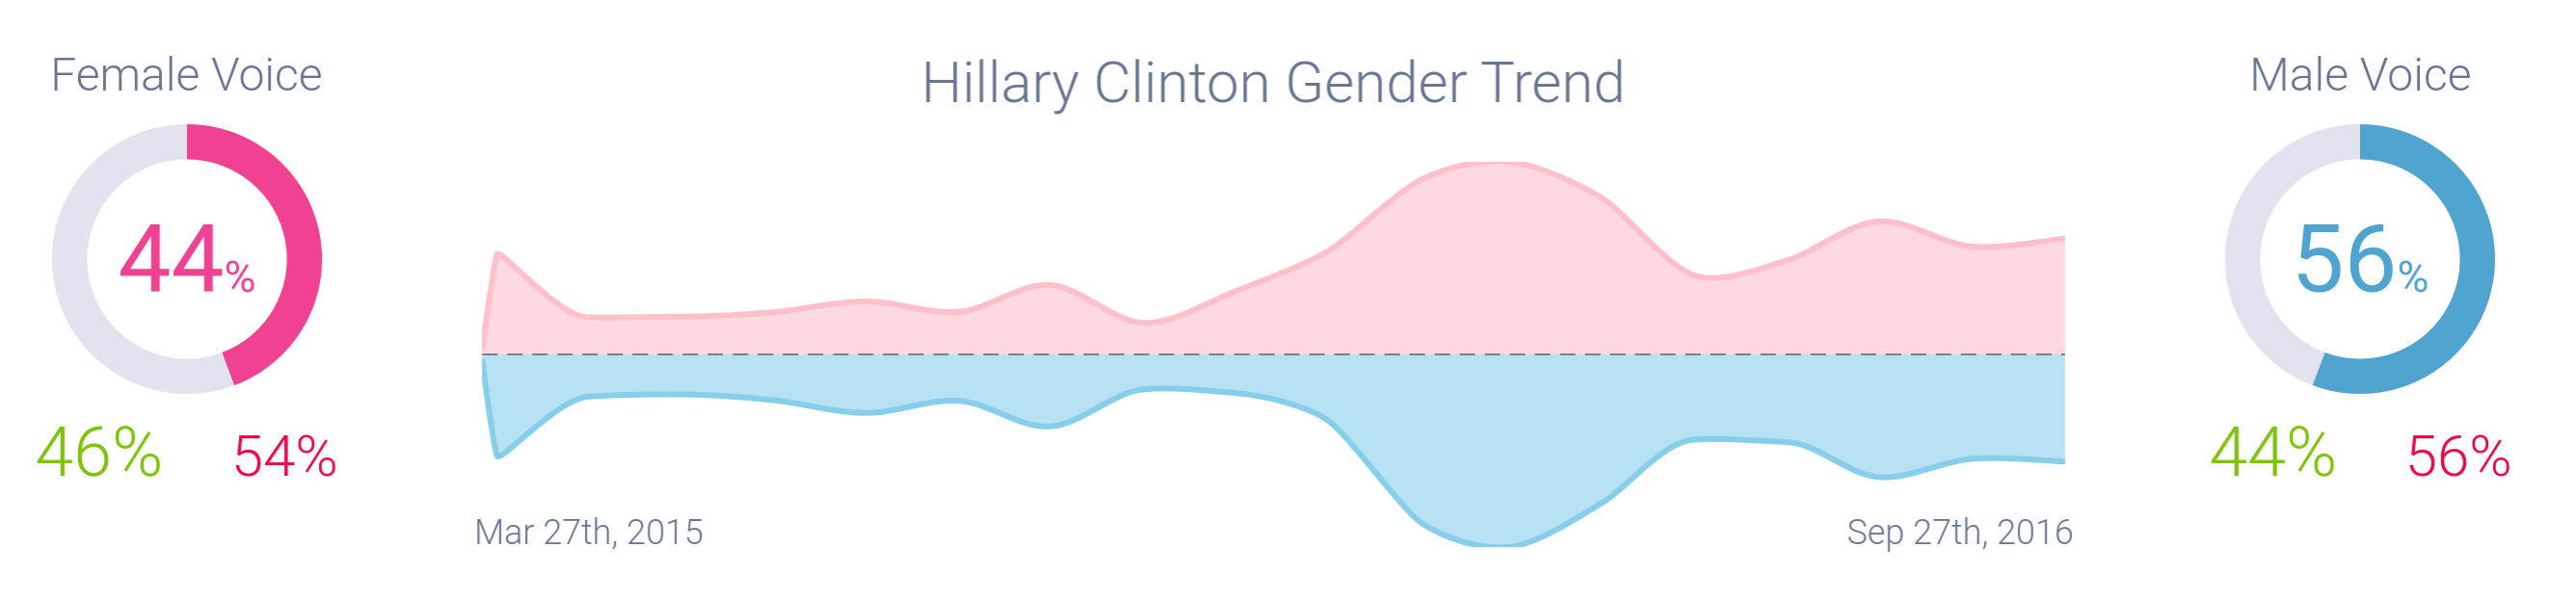 hillary_clinton_typically_wins_wwomen-244397-edited.png